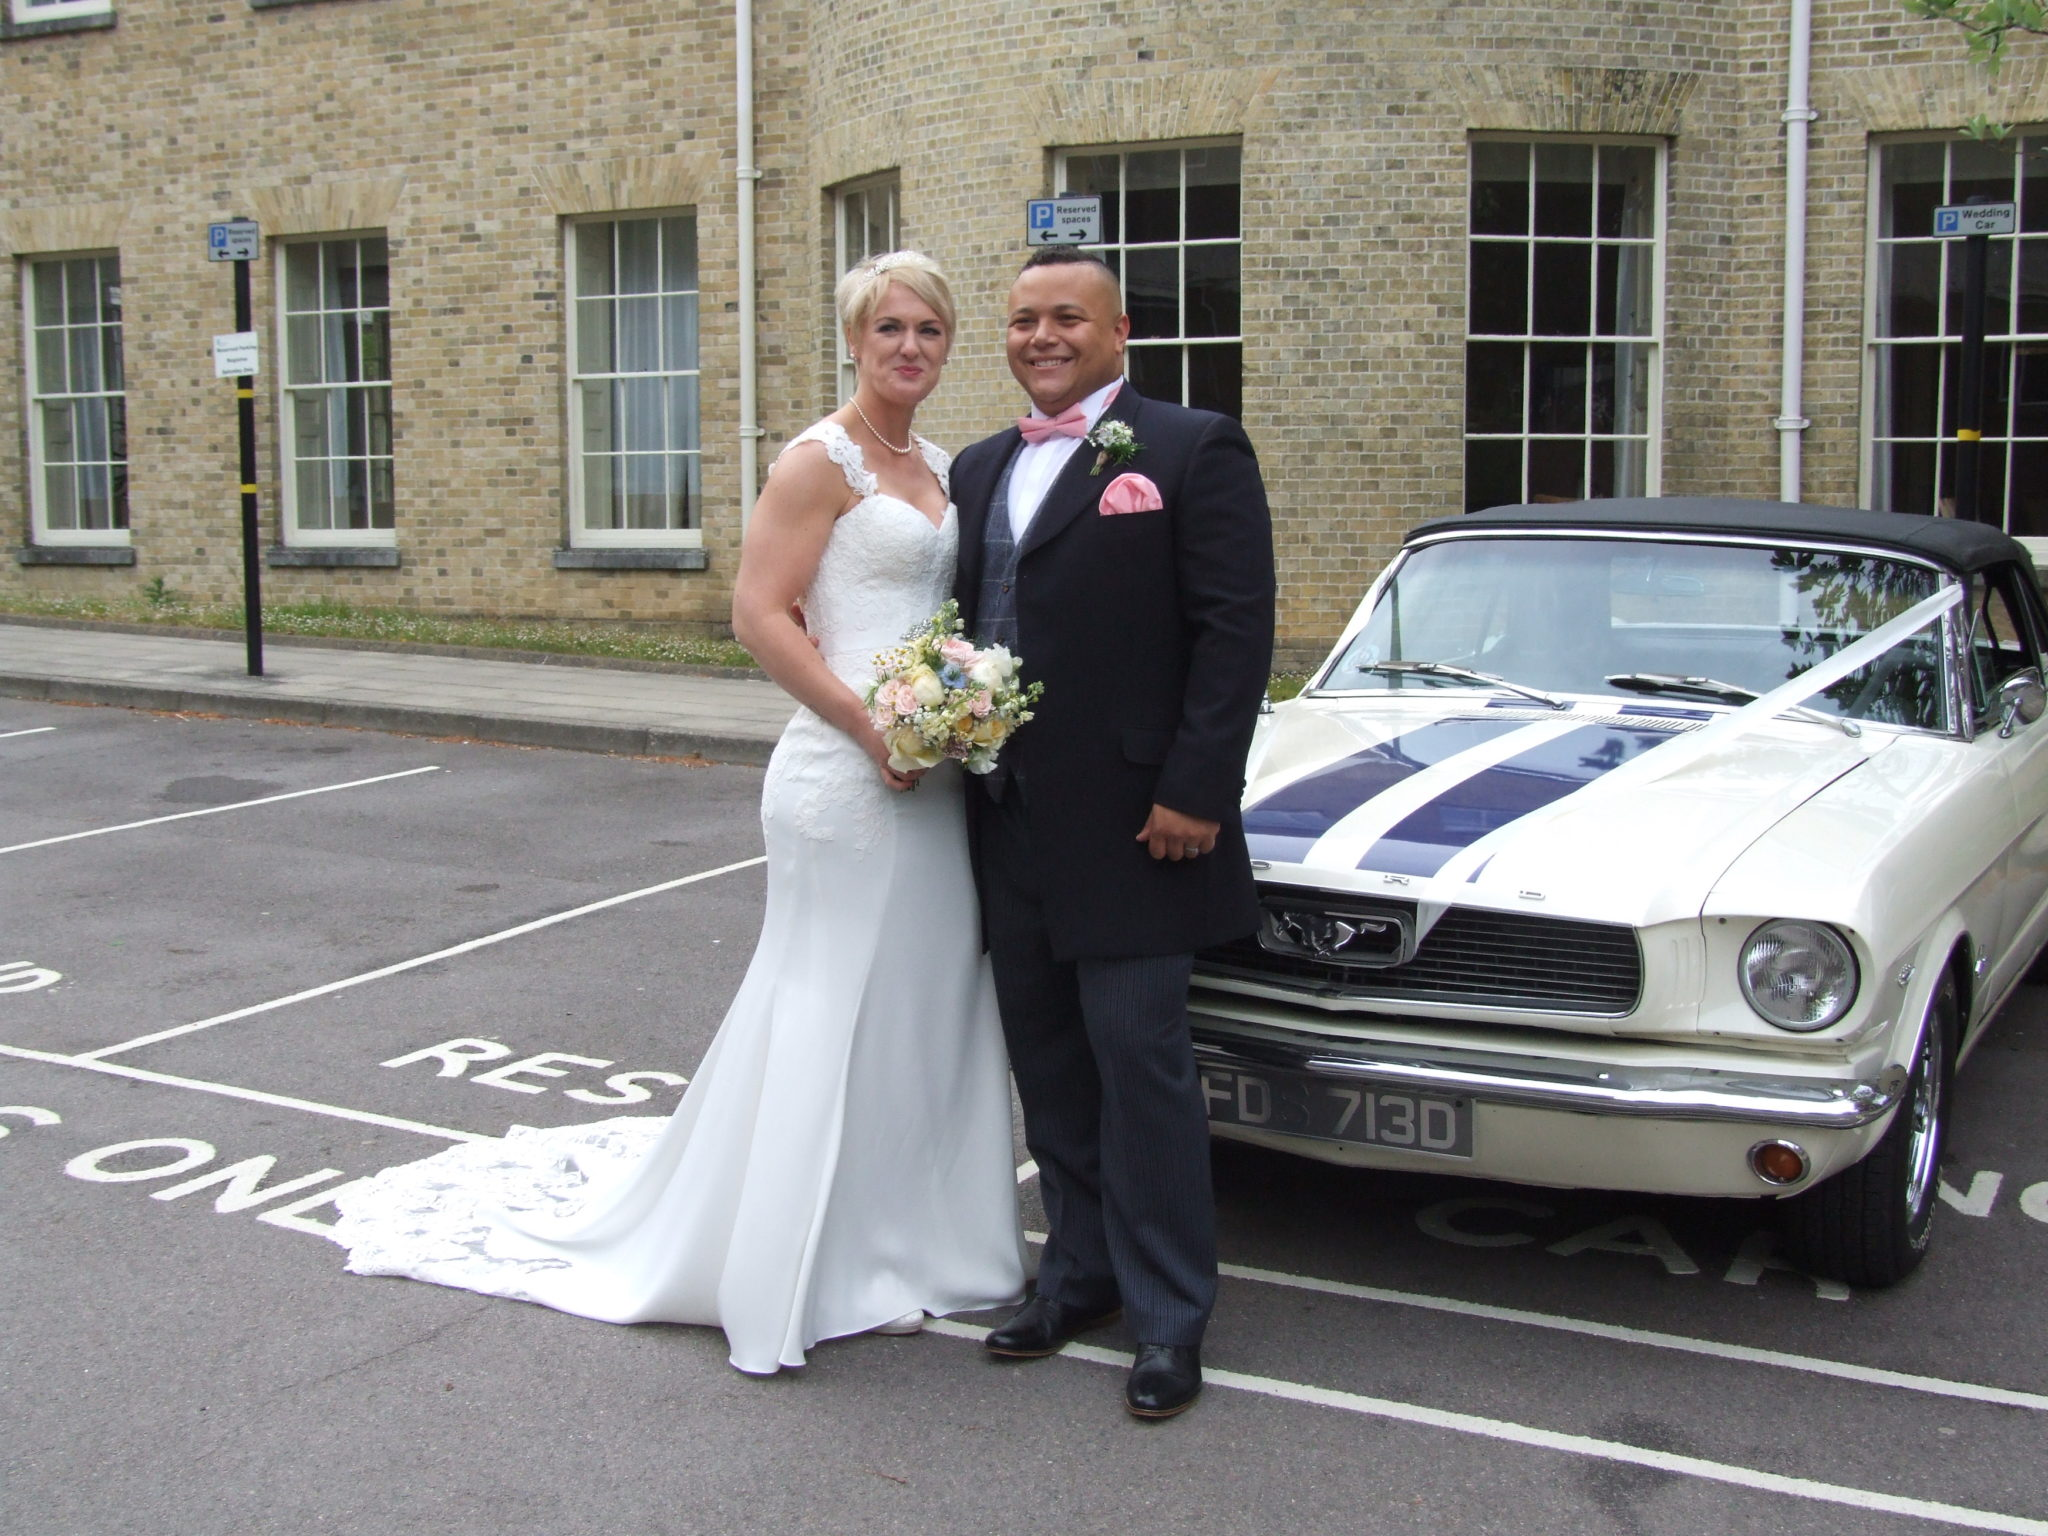 Mustang wedding car hire - Always Chauffeur